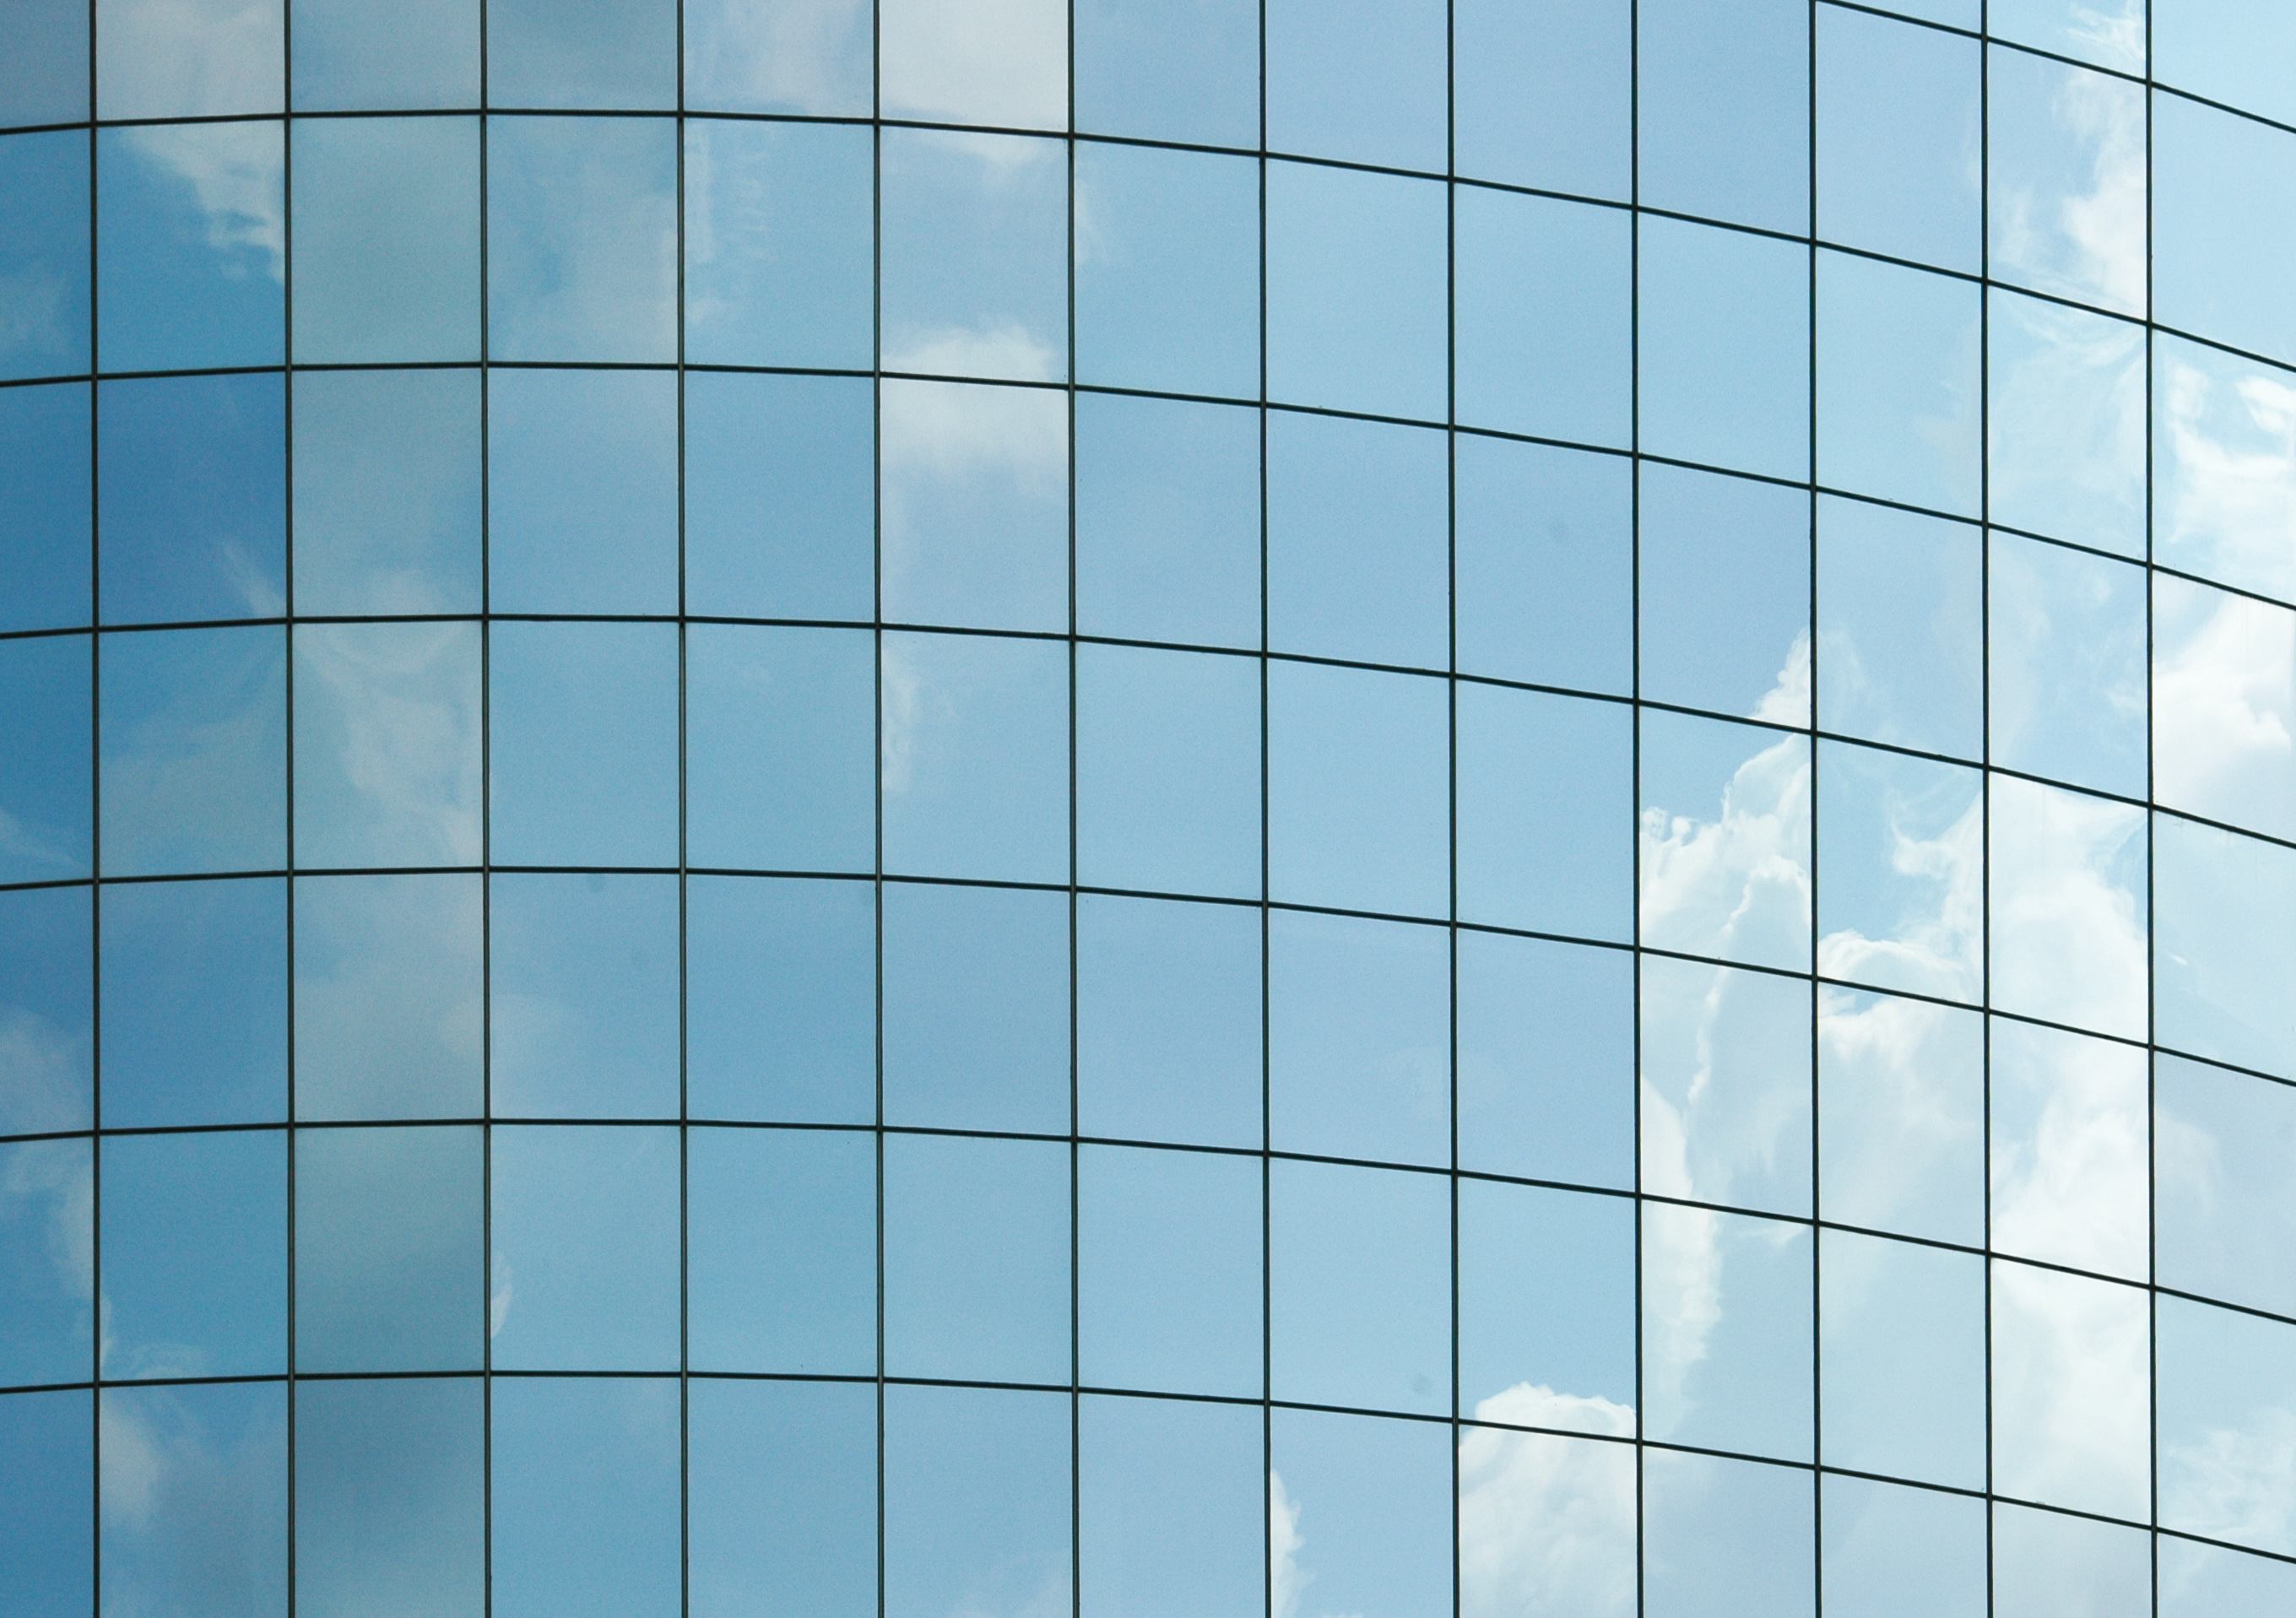 Blue Skyscraper Windows - Pattern Pictures free textures and free photos